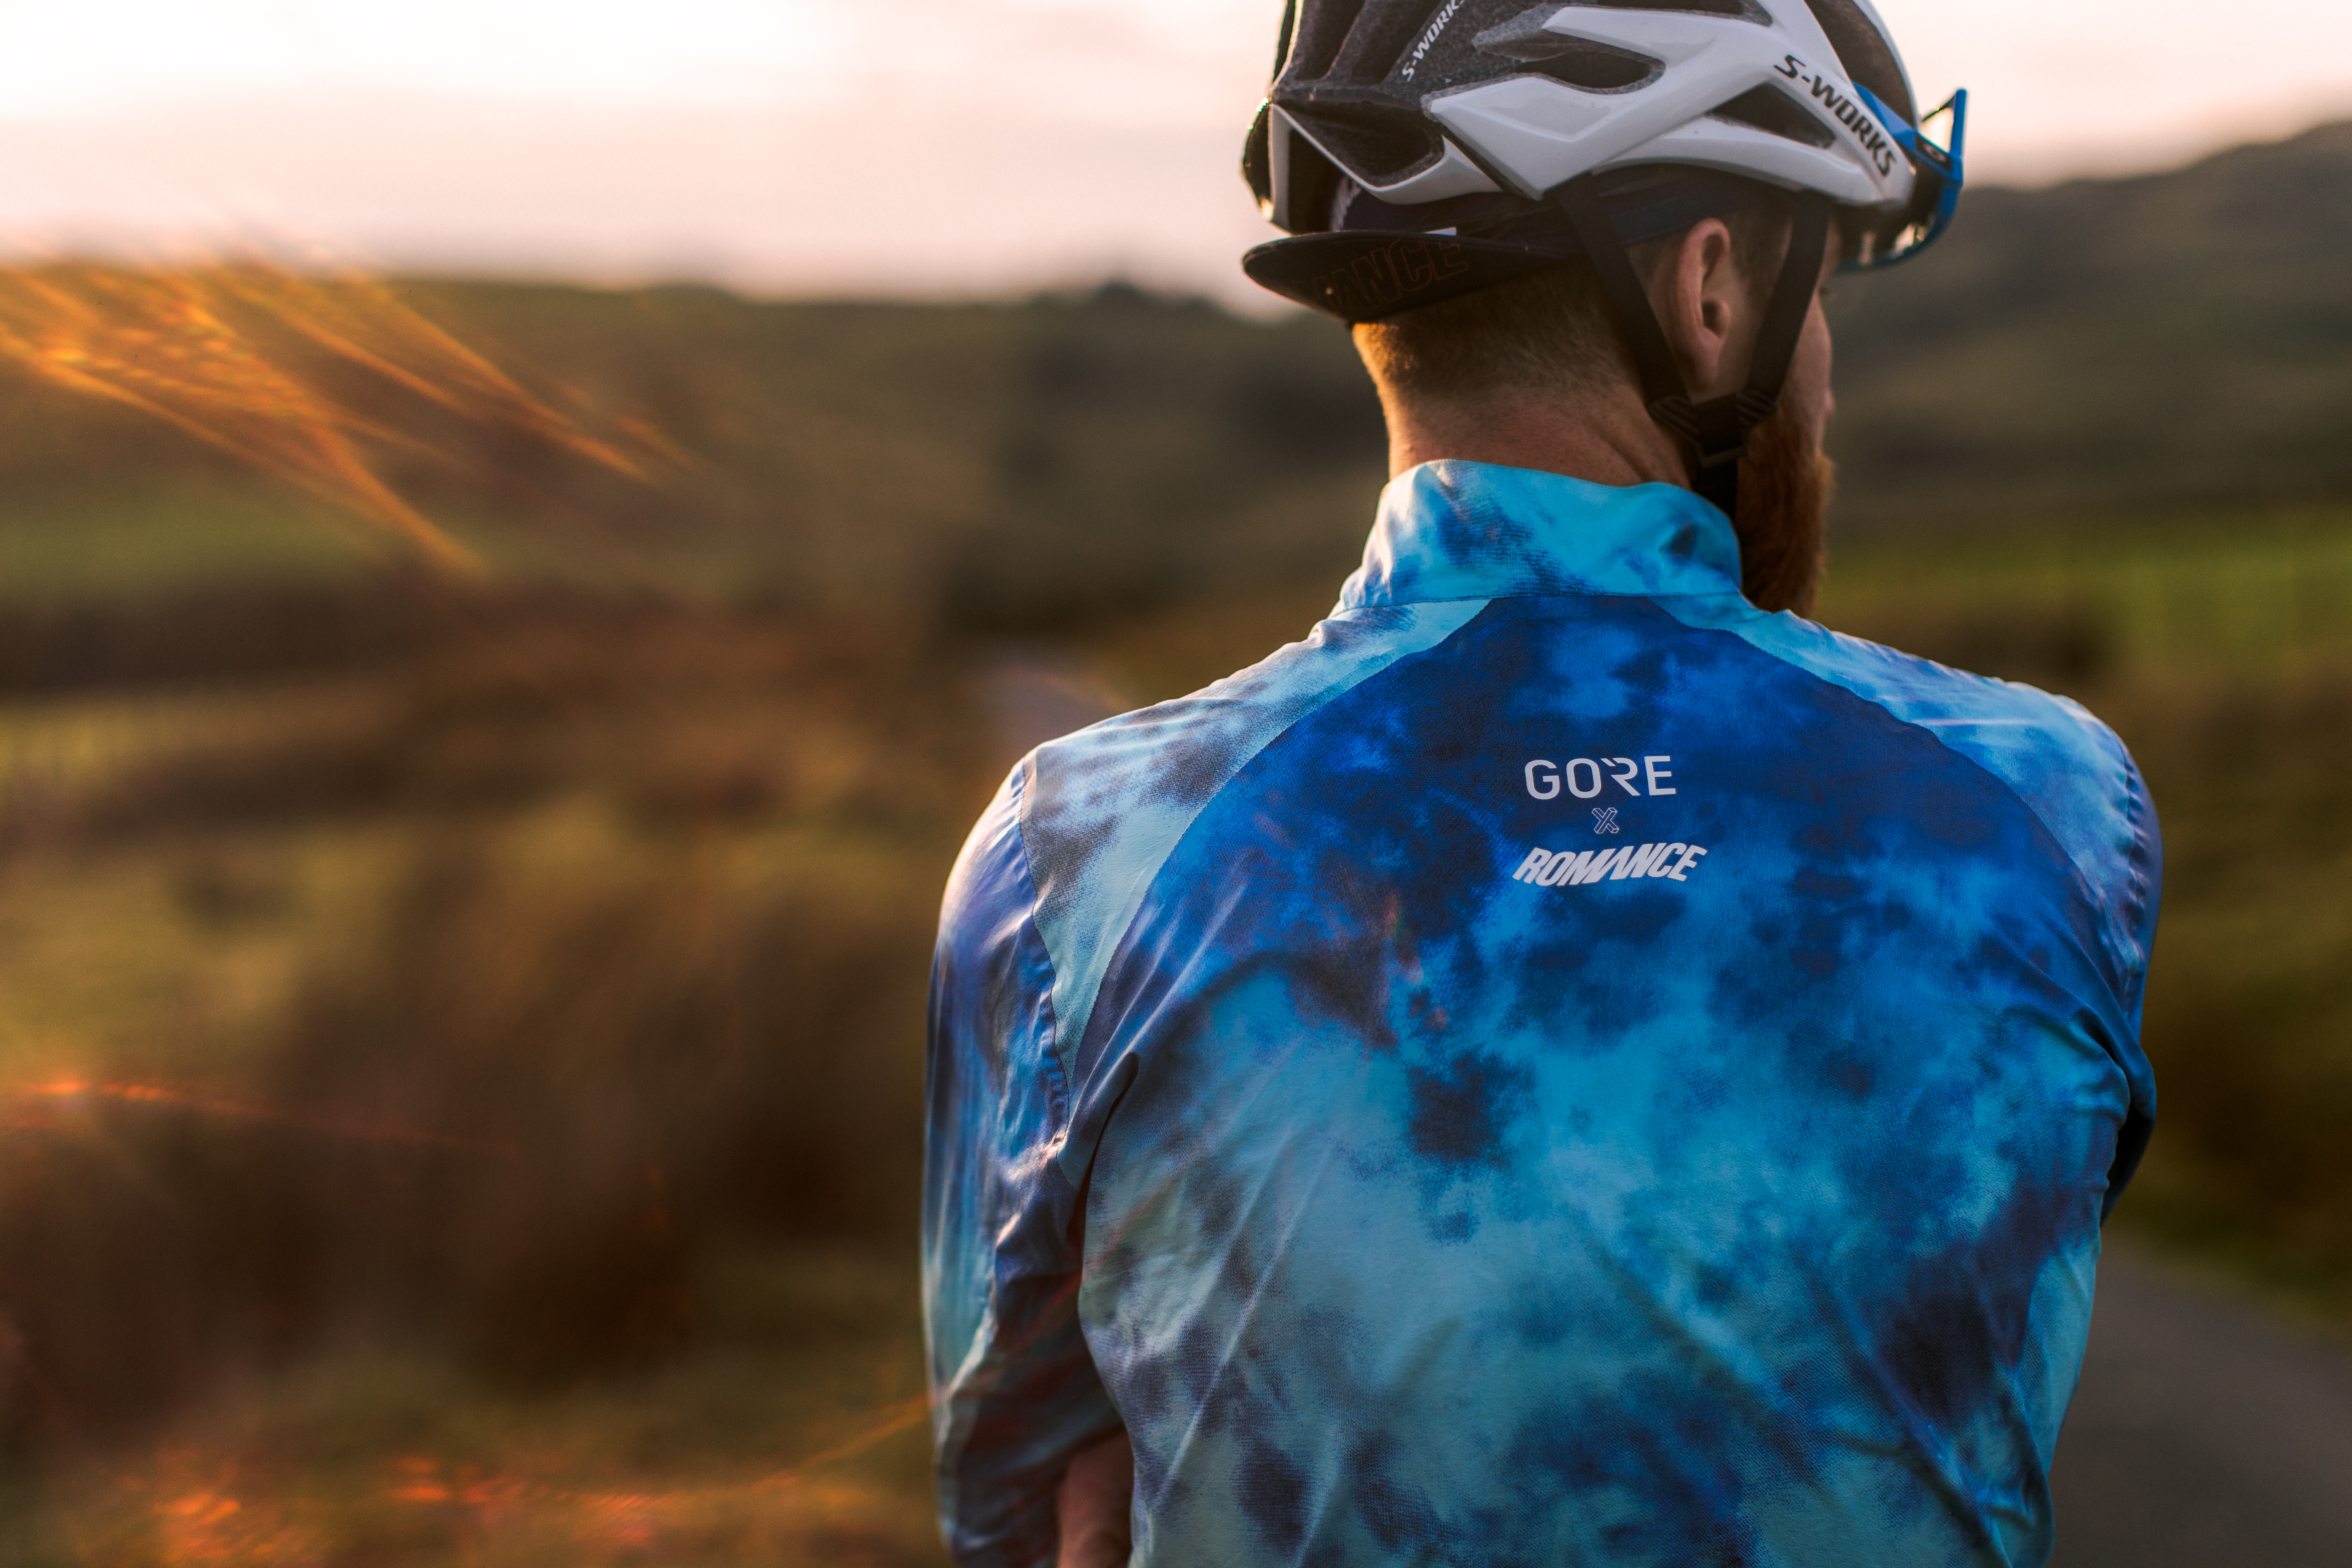 GORE® Wear Collaborate with ROMANCE to Create New Limited Edition GORE® x Romance GORE-TEX SHAKEDRY™ Jacket